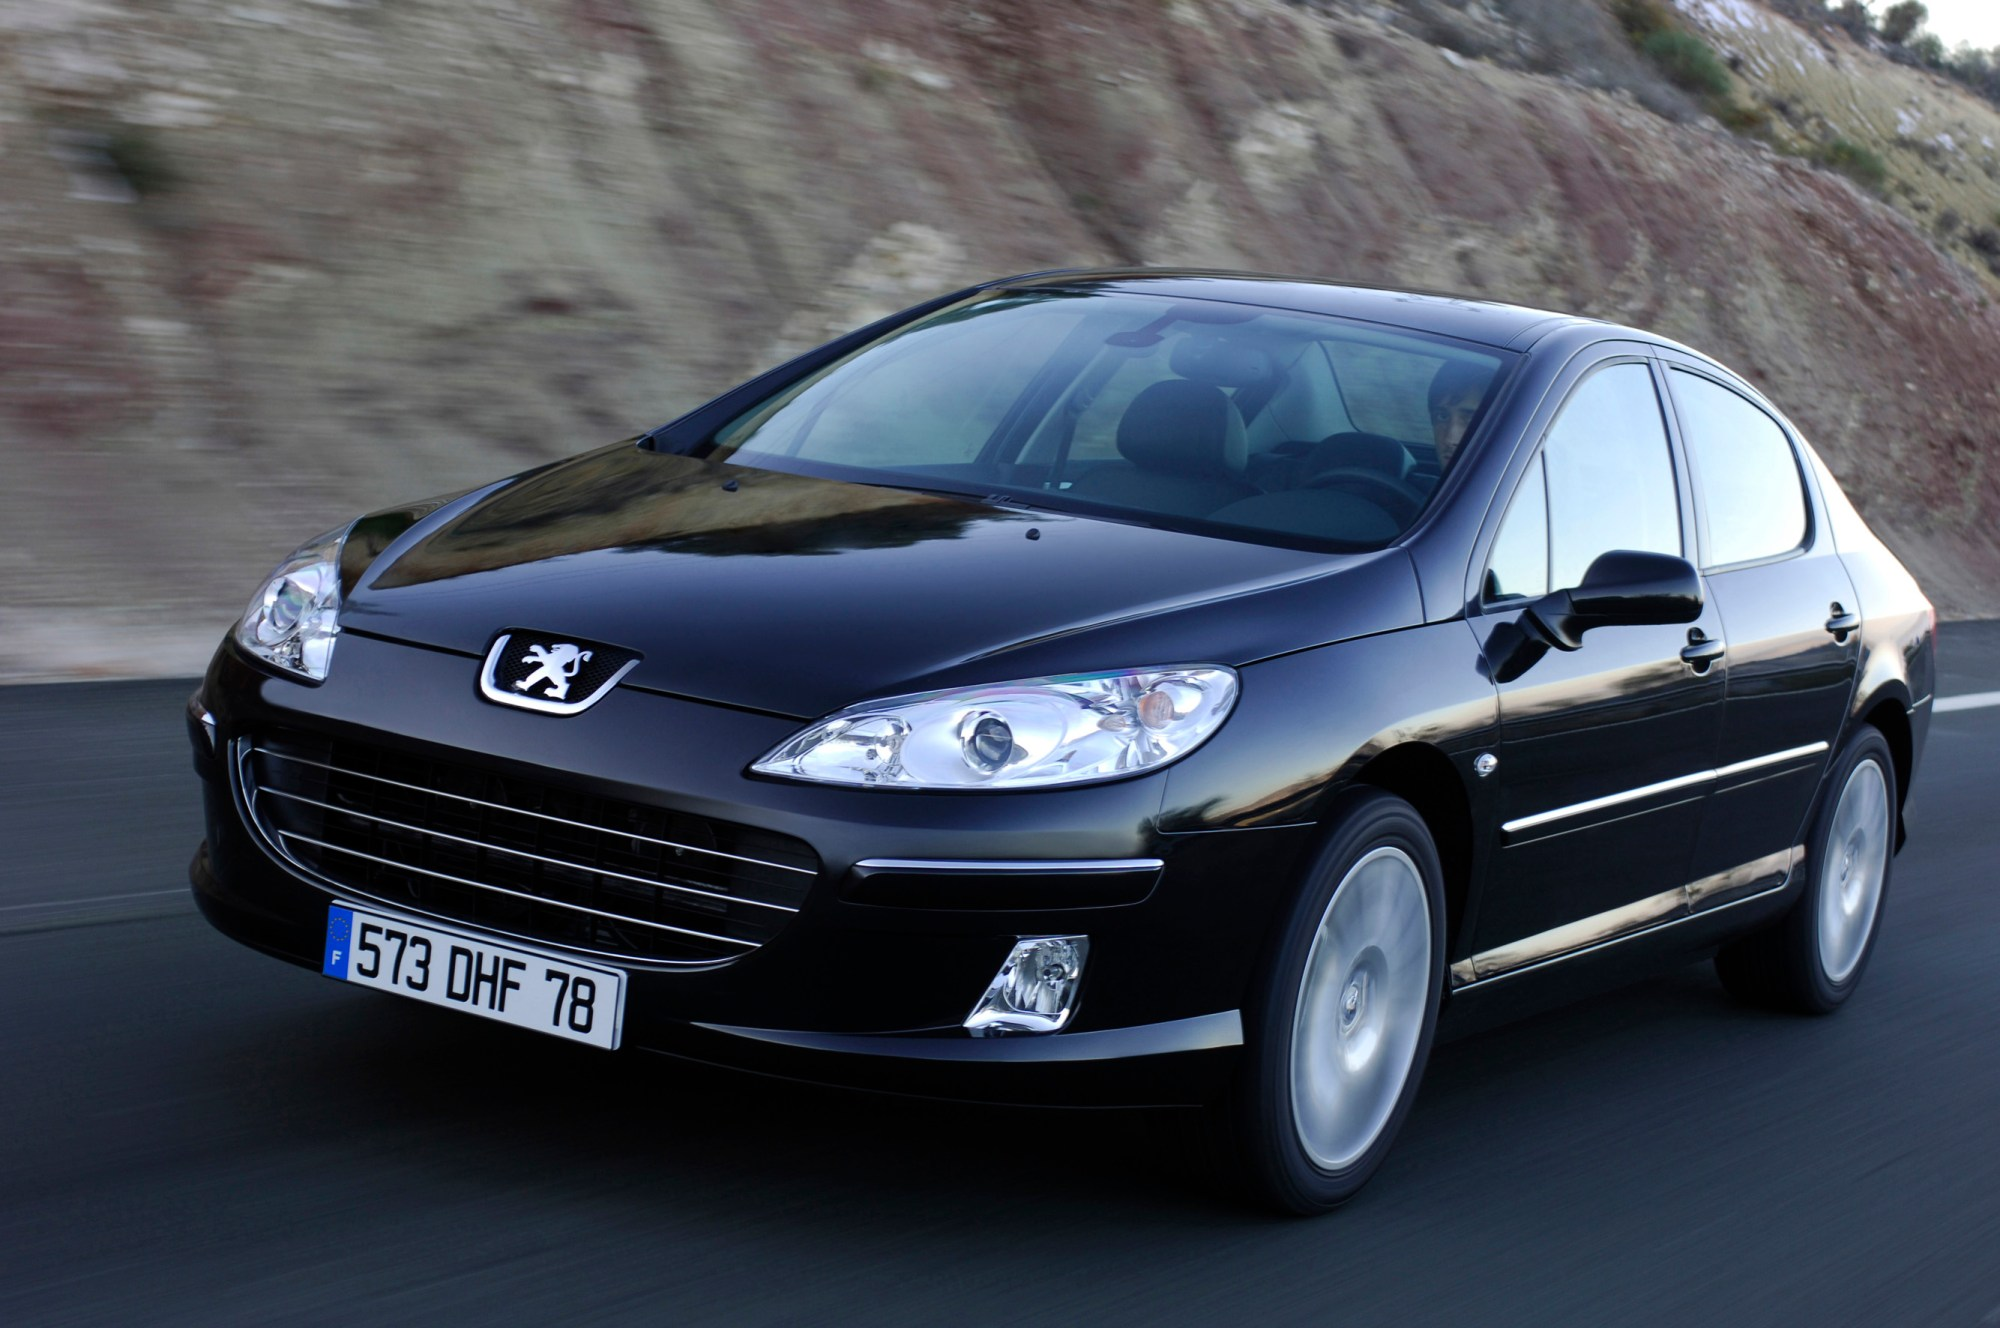 hight resolution of 2006 peugeot 407 top speed